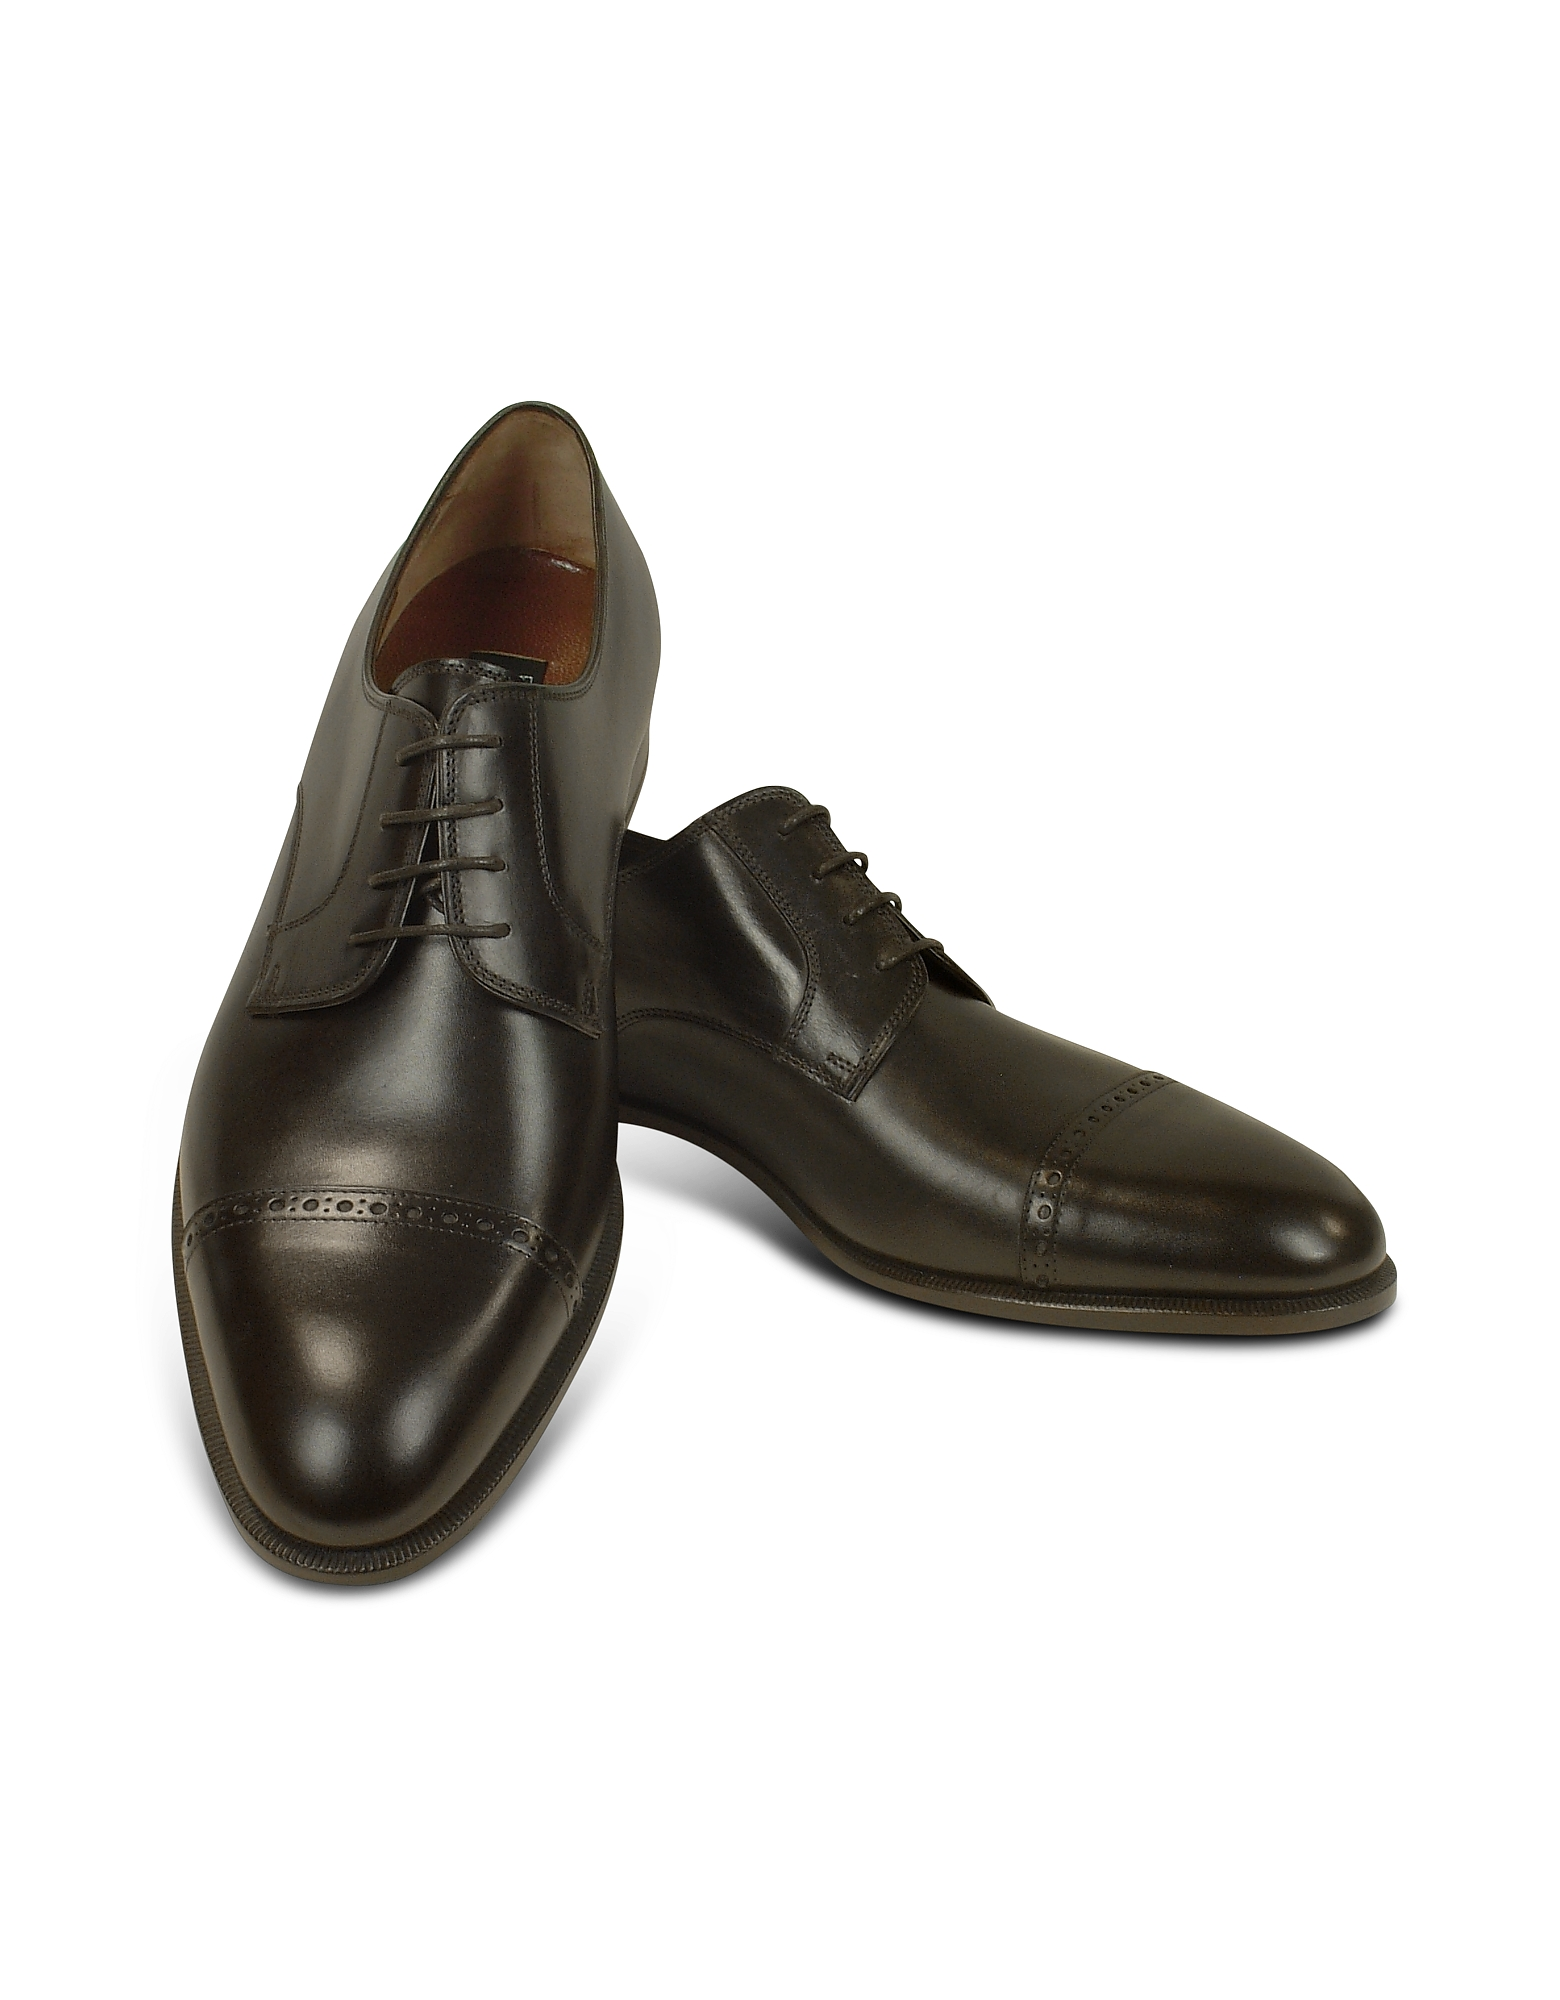 Fratelli Rossetti Shoes, Dark Brown Calf Leather Cap Toe Oxford Shoes